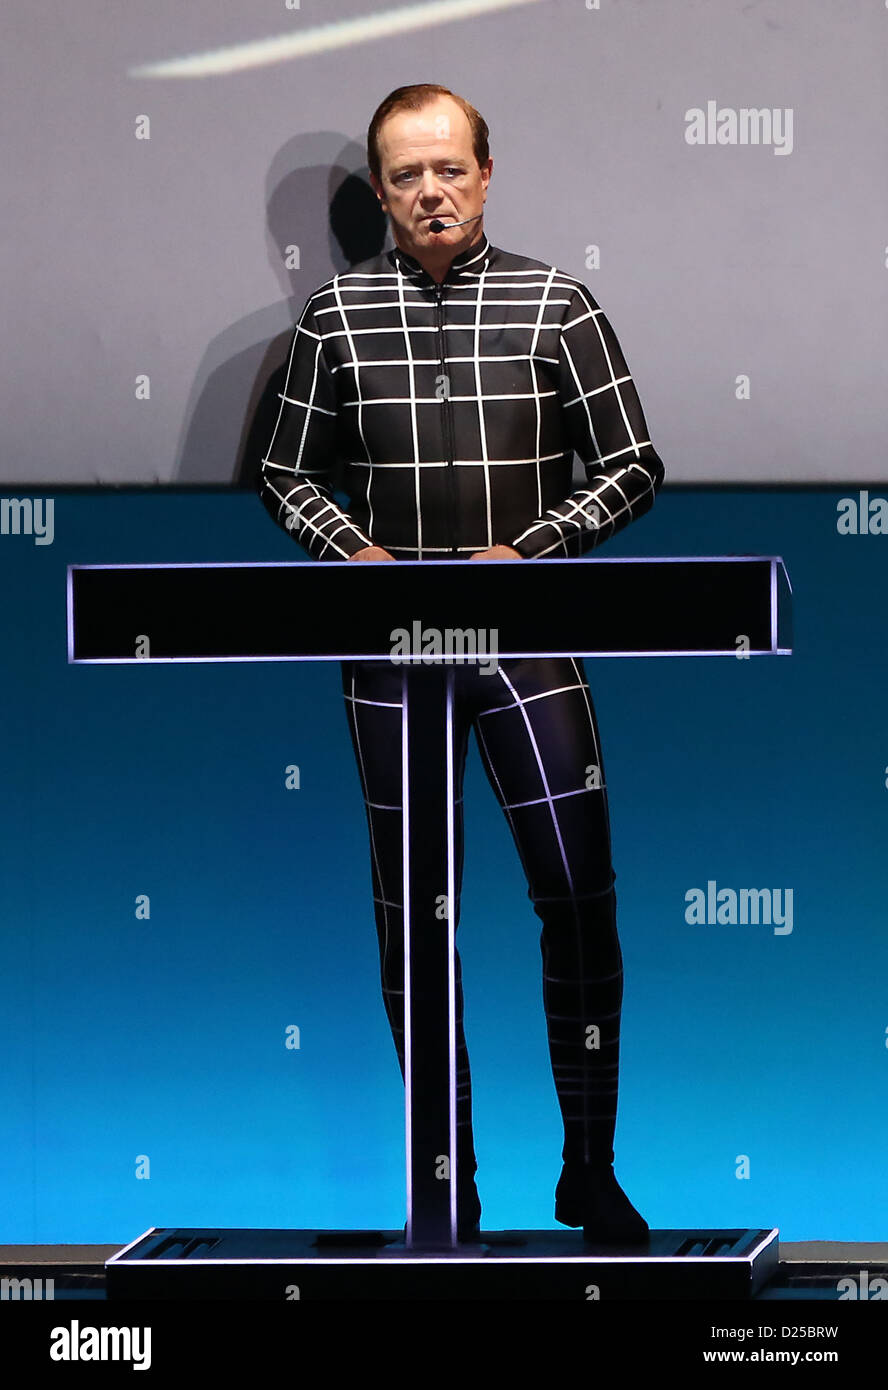 The founding member of the German electronic band Kraftwerk, Ralf Huetter, performs on stage at the arts exhibition Stock Photo